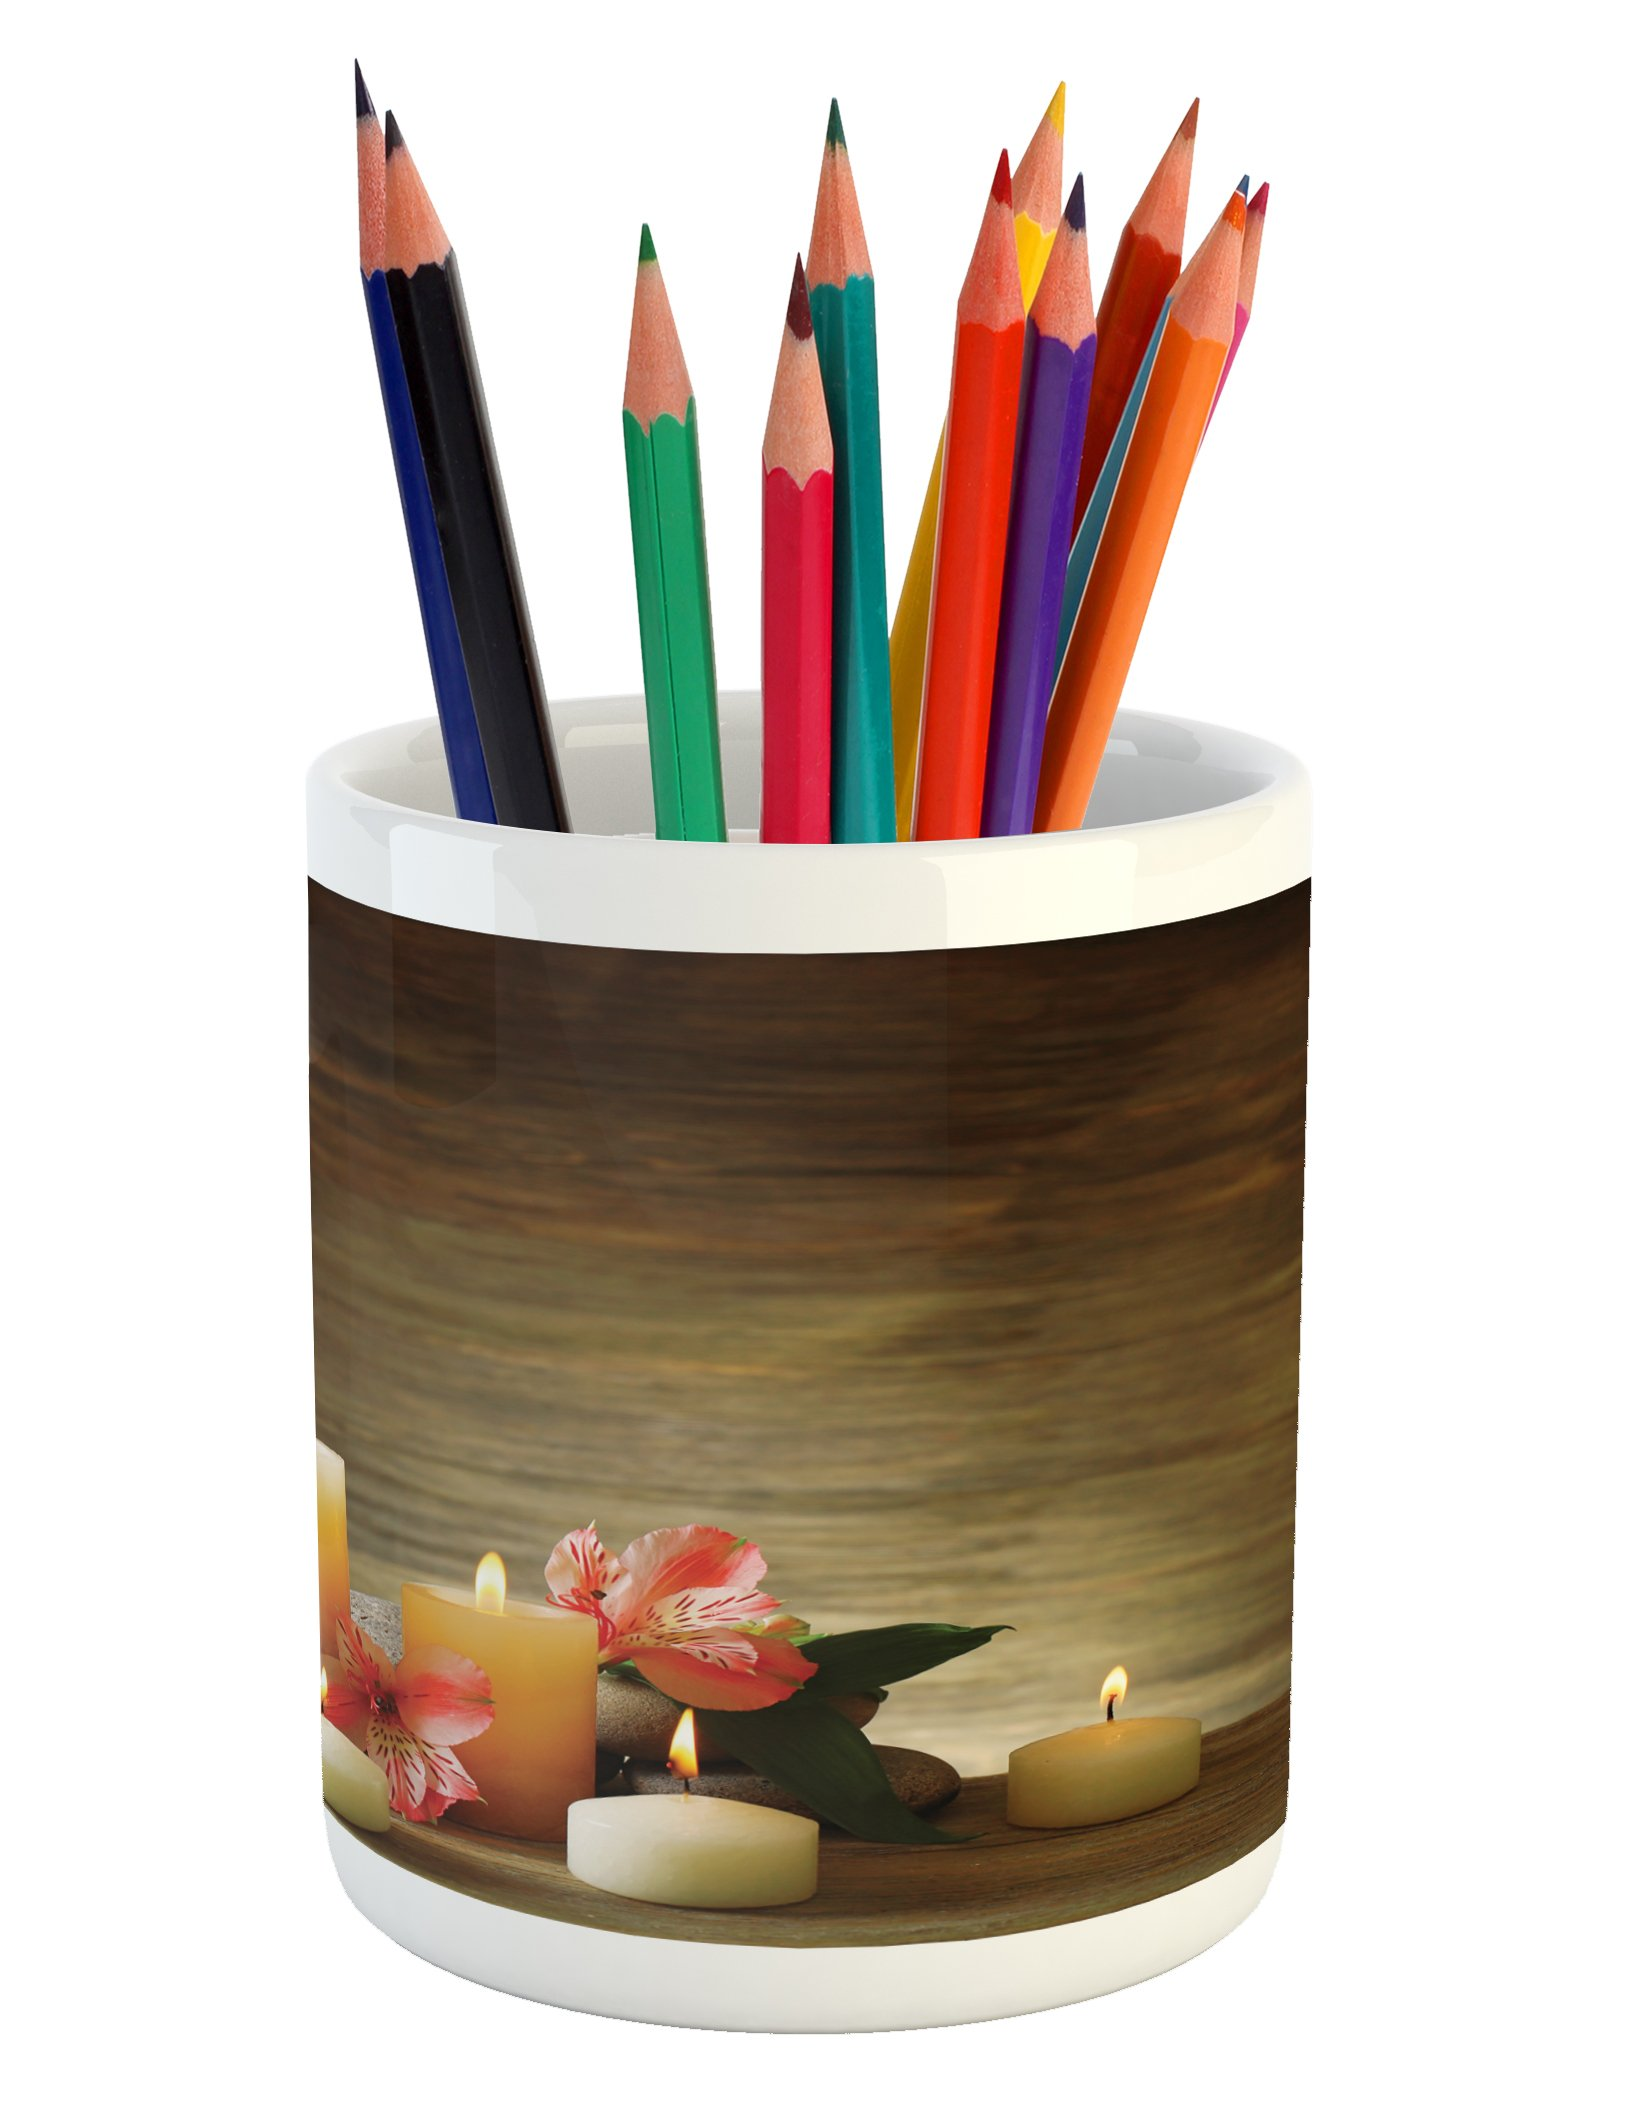 Ambesonne Spa Pencil Pen Holder, Spa Composition with Many Candles Wellbeing Unity Neutrality Icons Calm Happiness Theme, Printed Ceramic Pencil Pen Holder for Desk Office Accessory, Multicolor